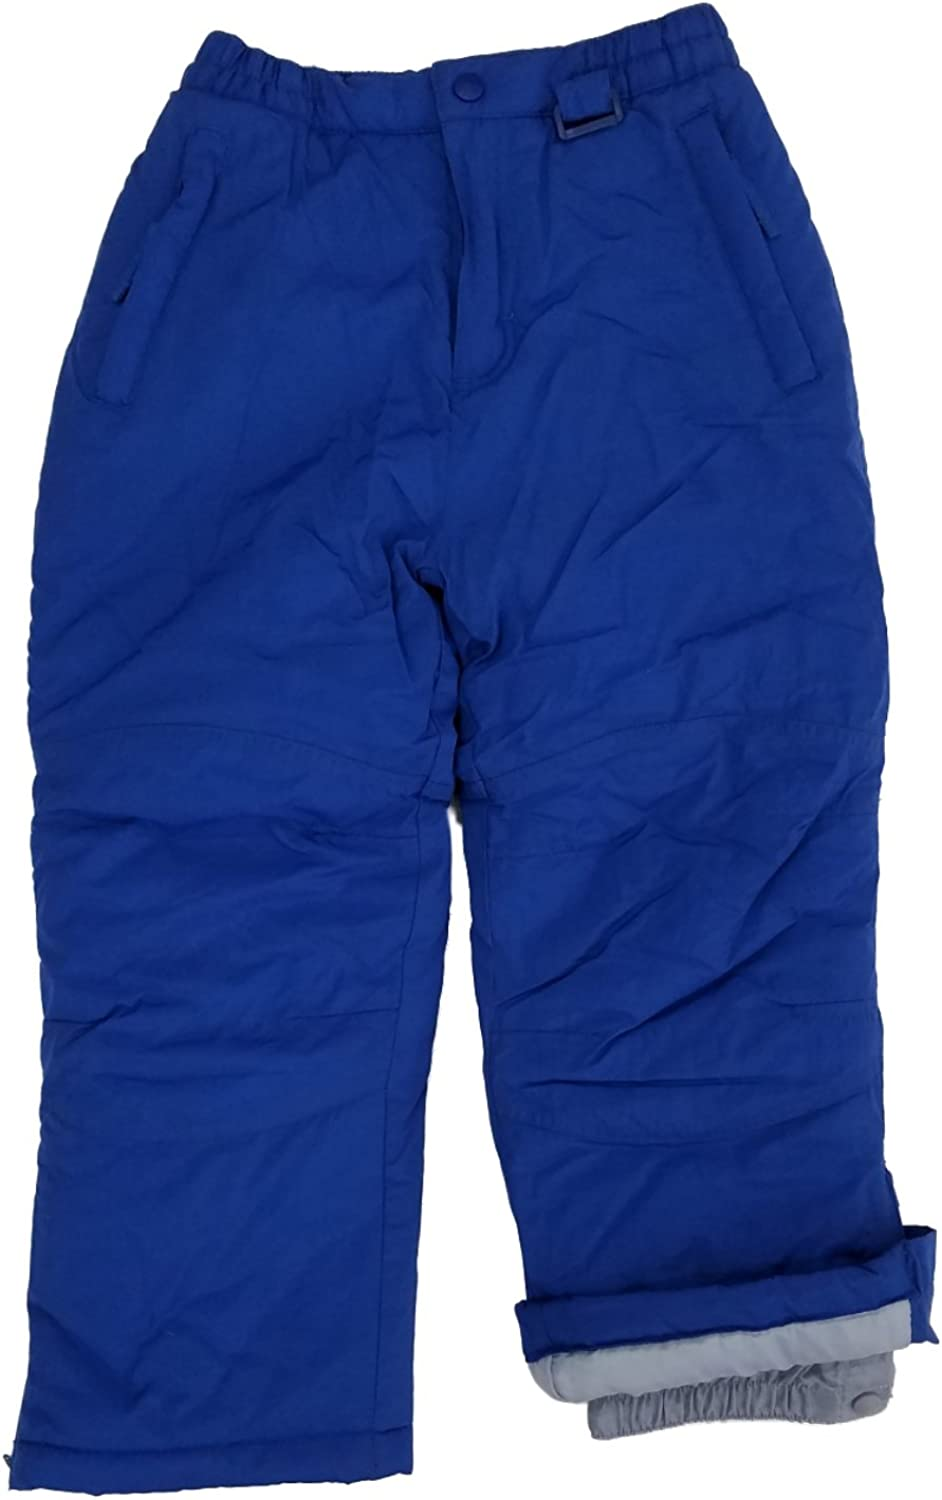 Athletic Works Girls Royal Blue Wind Resistant Insulated Ski Snow Pants Large 12-14